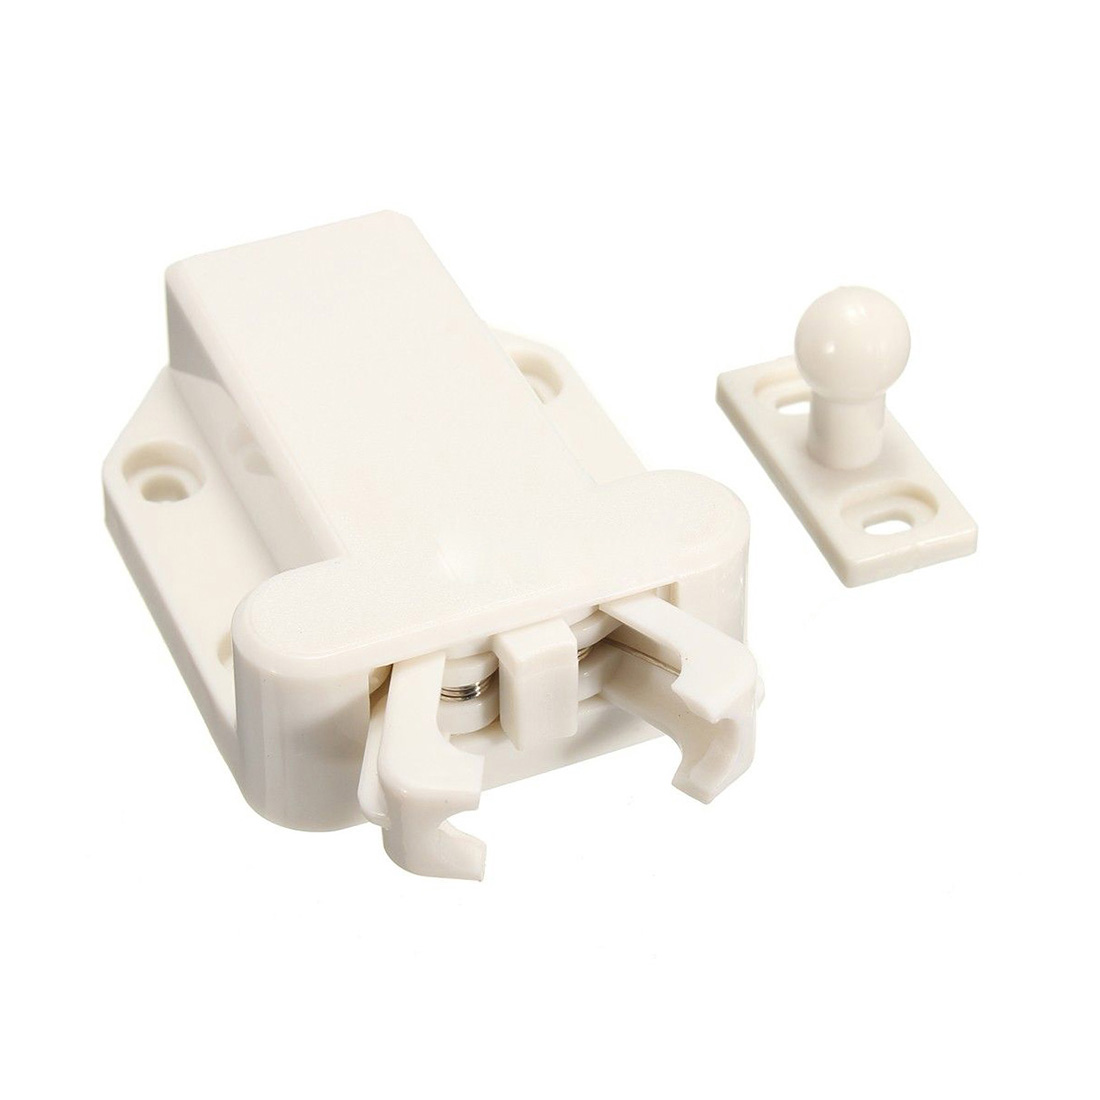 New Style 10X Push To Open Beetles Drawer Cabinet Latch Catch Touch Release Cupboard White push to open beetles drawer cabinet latch catch touch release kitchen cupboard new arrival high quality